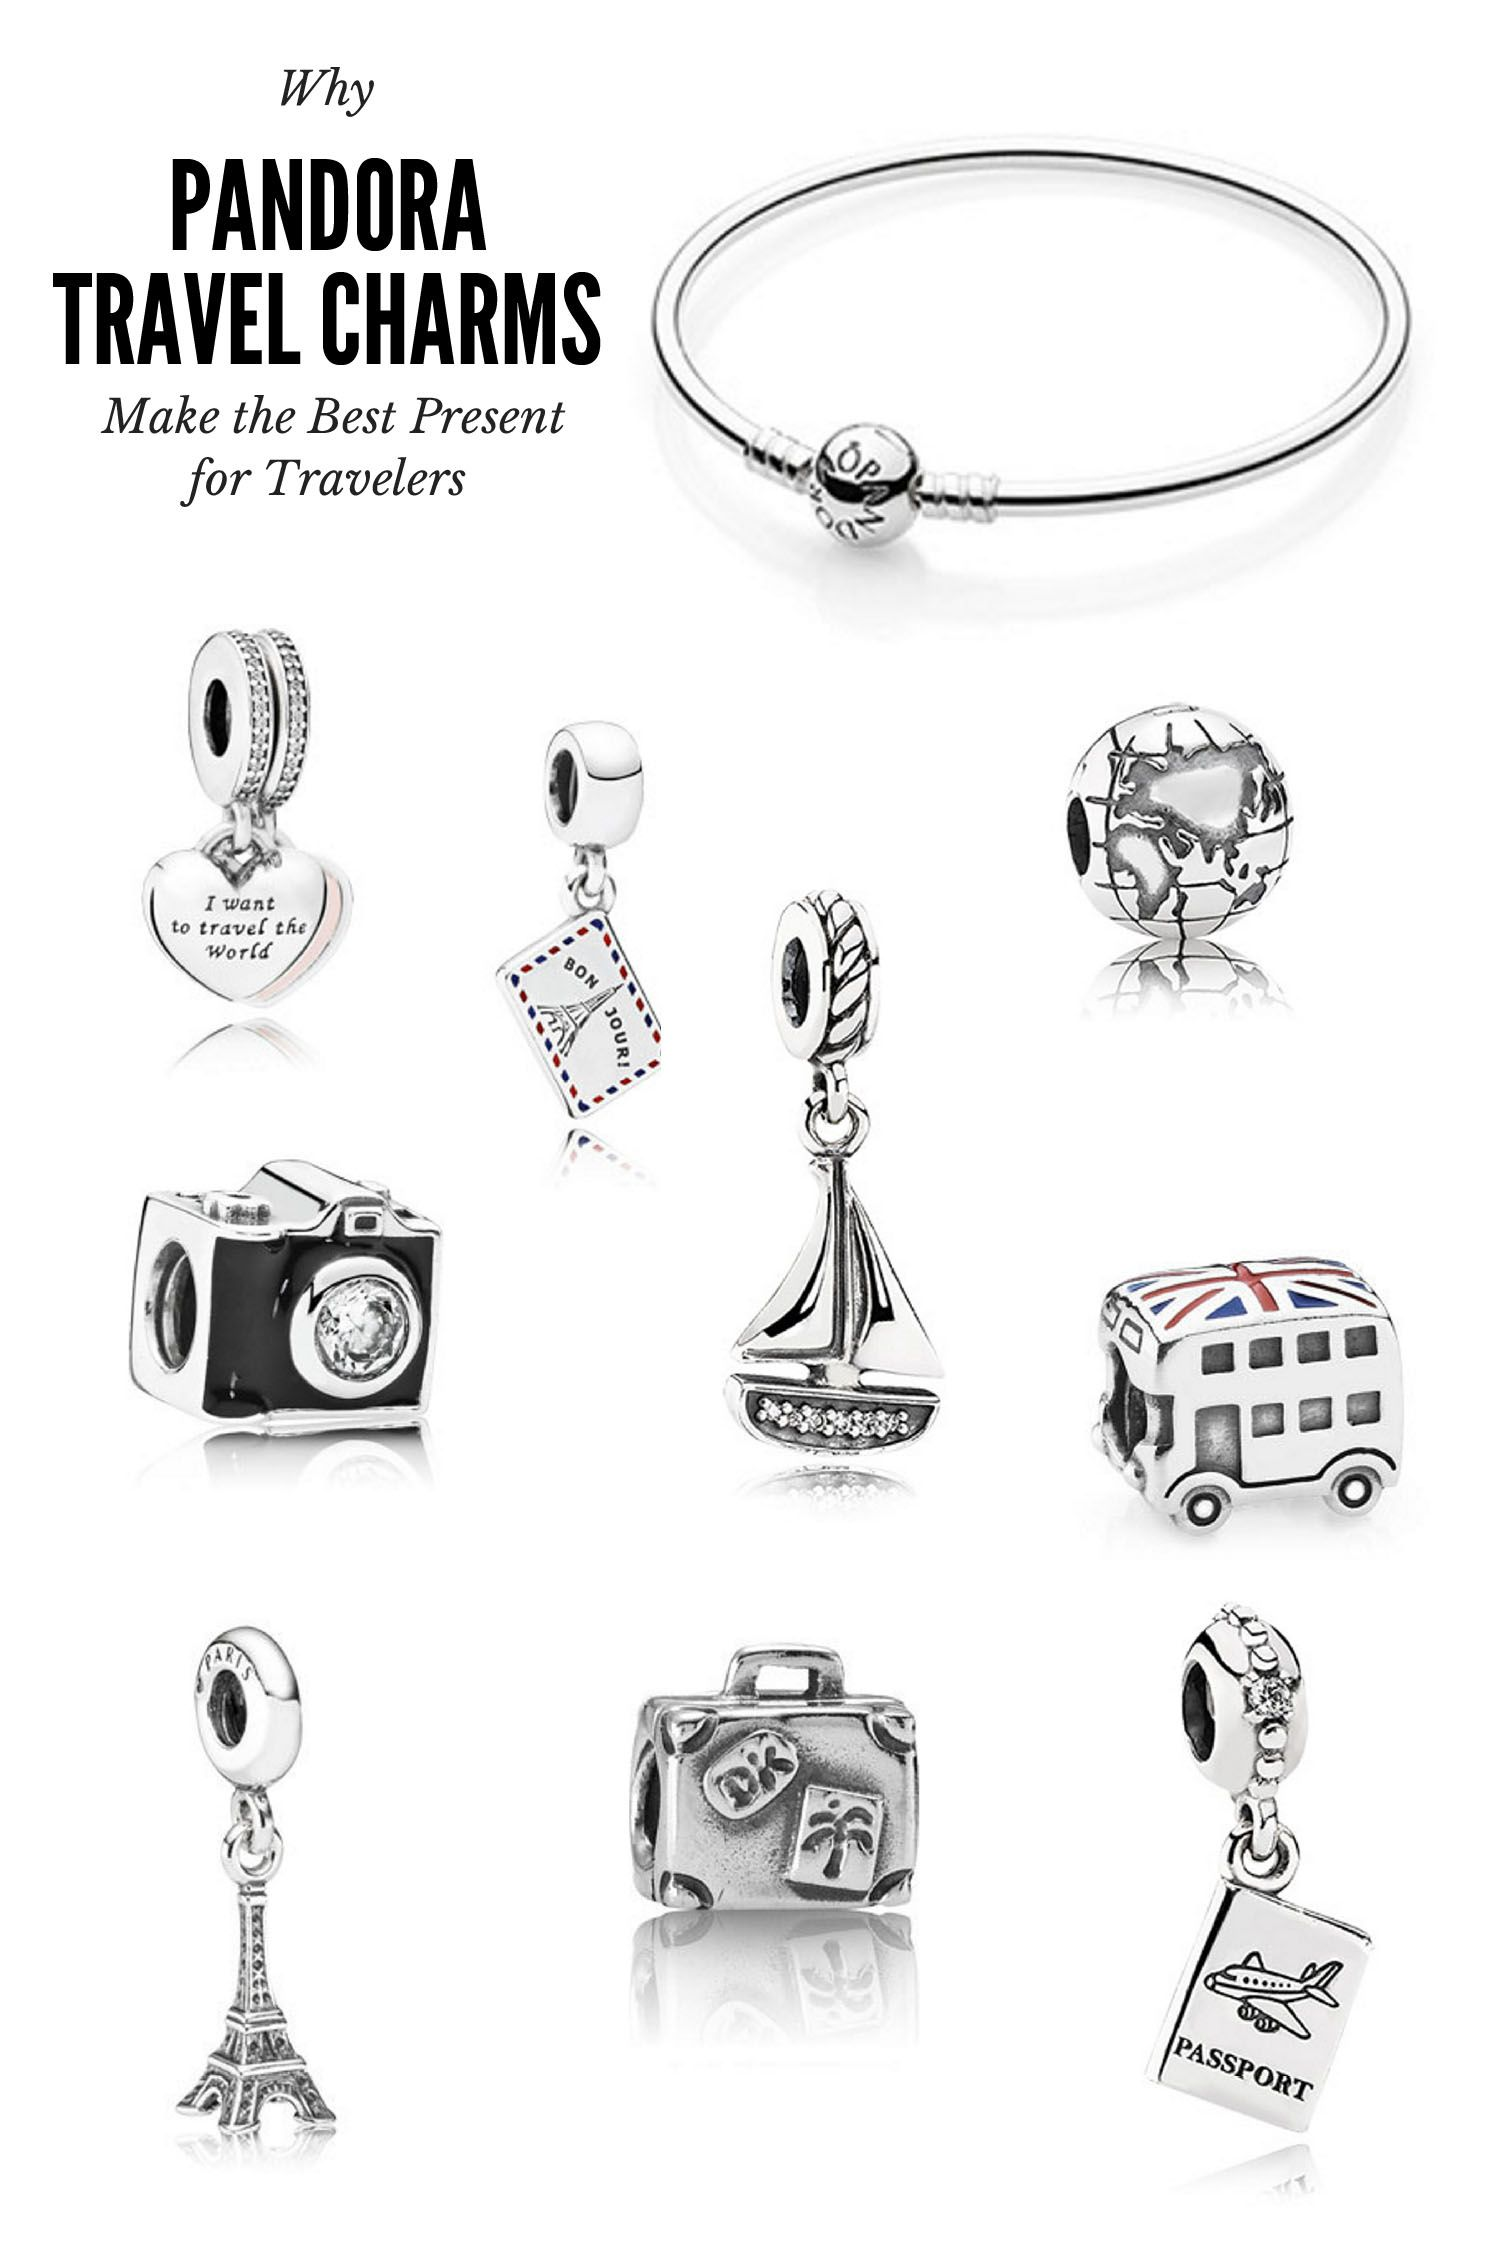 Why Pandora Travel Charms Make the Best Present for Travelers   The Backslackers